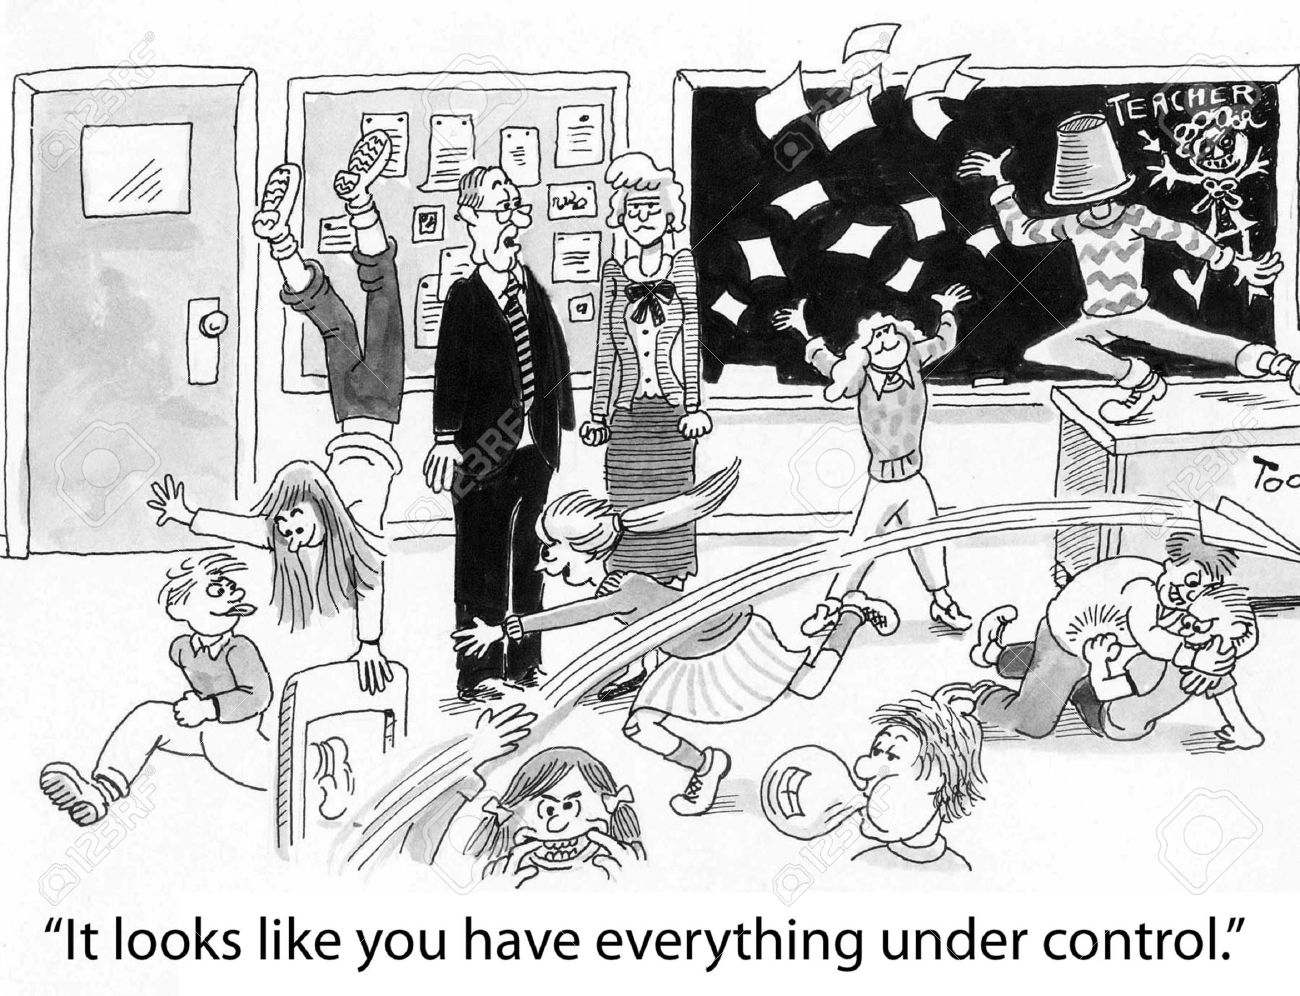 Cartoon of complete chaos in teachers classroom, principal says everything is under control - 36657617